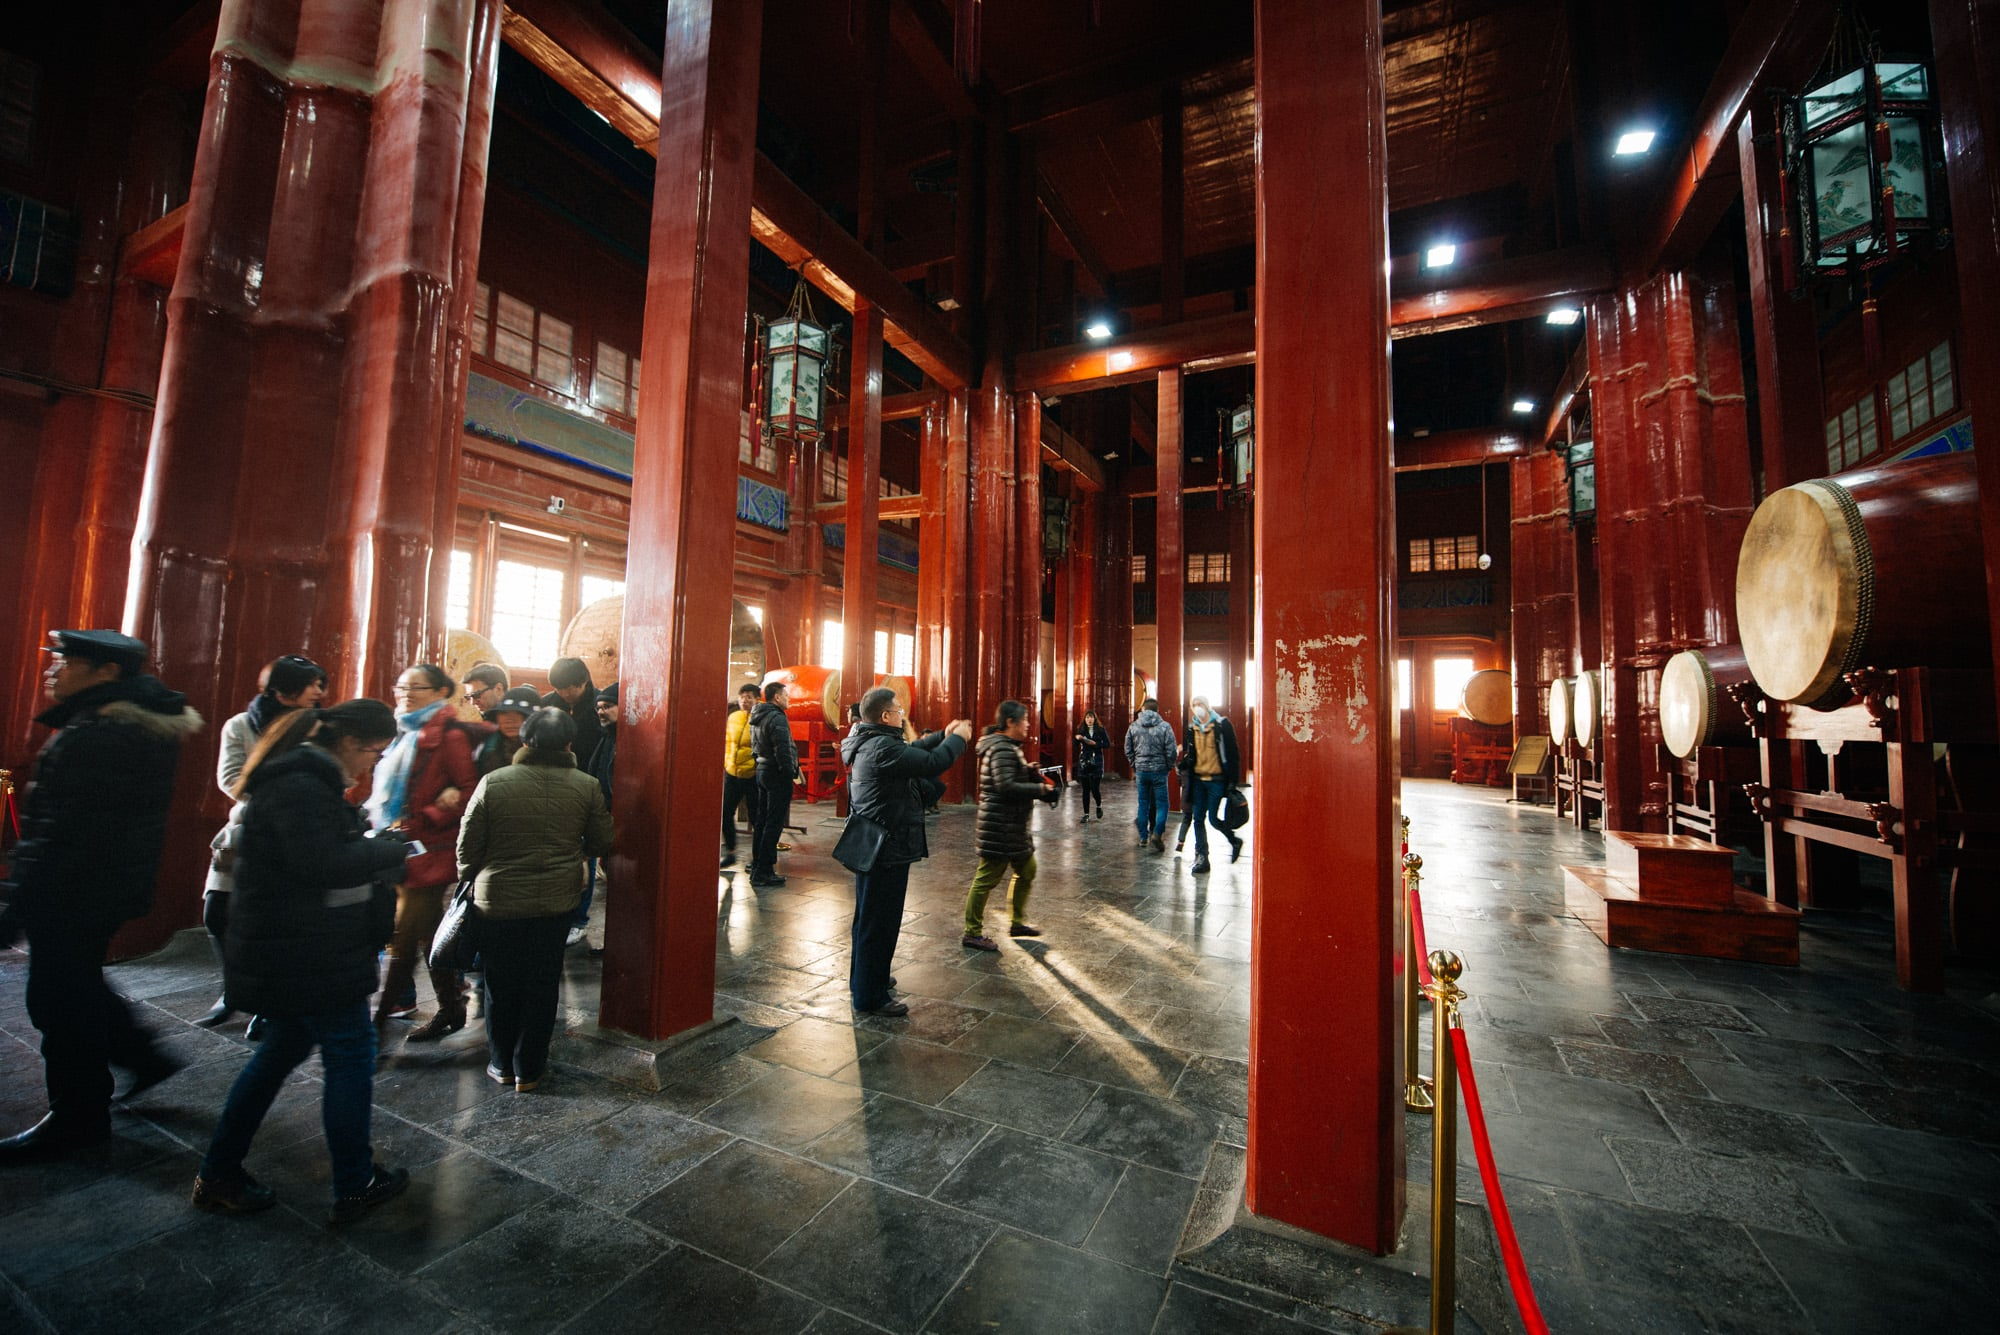 The inside of the Drum Tower. From time to time a group of performers come and show their drumming skills.